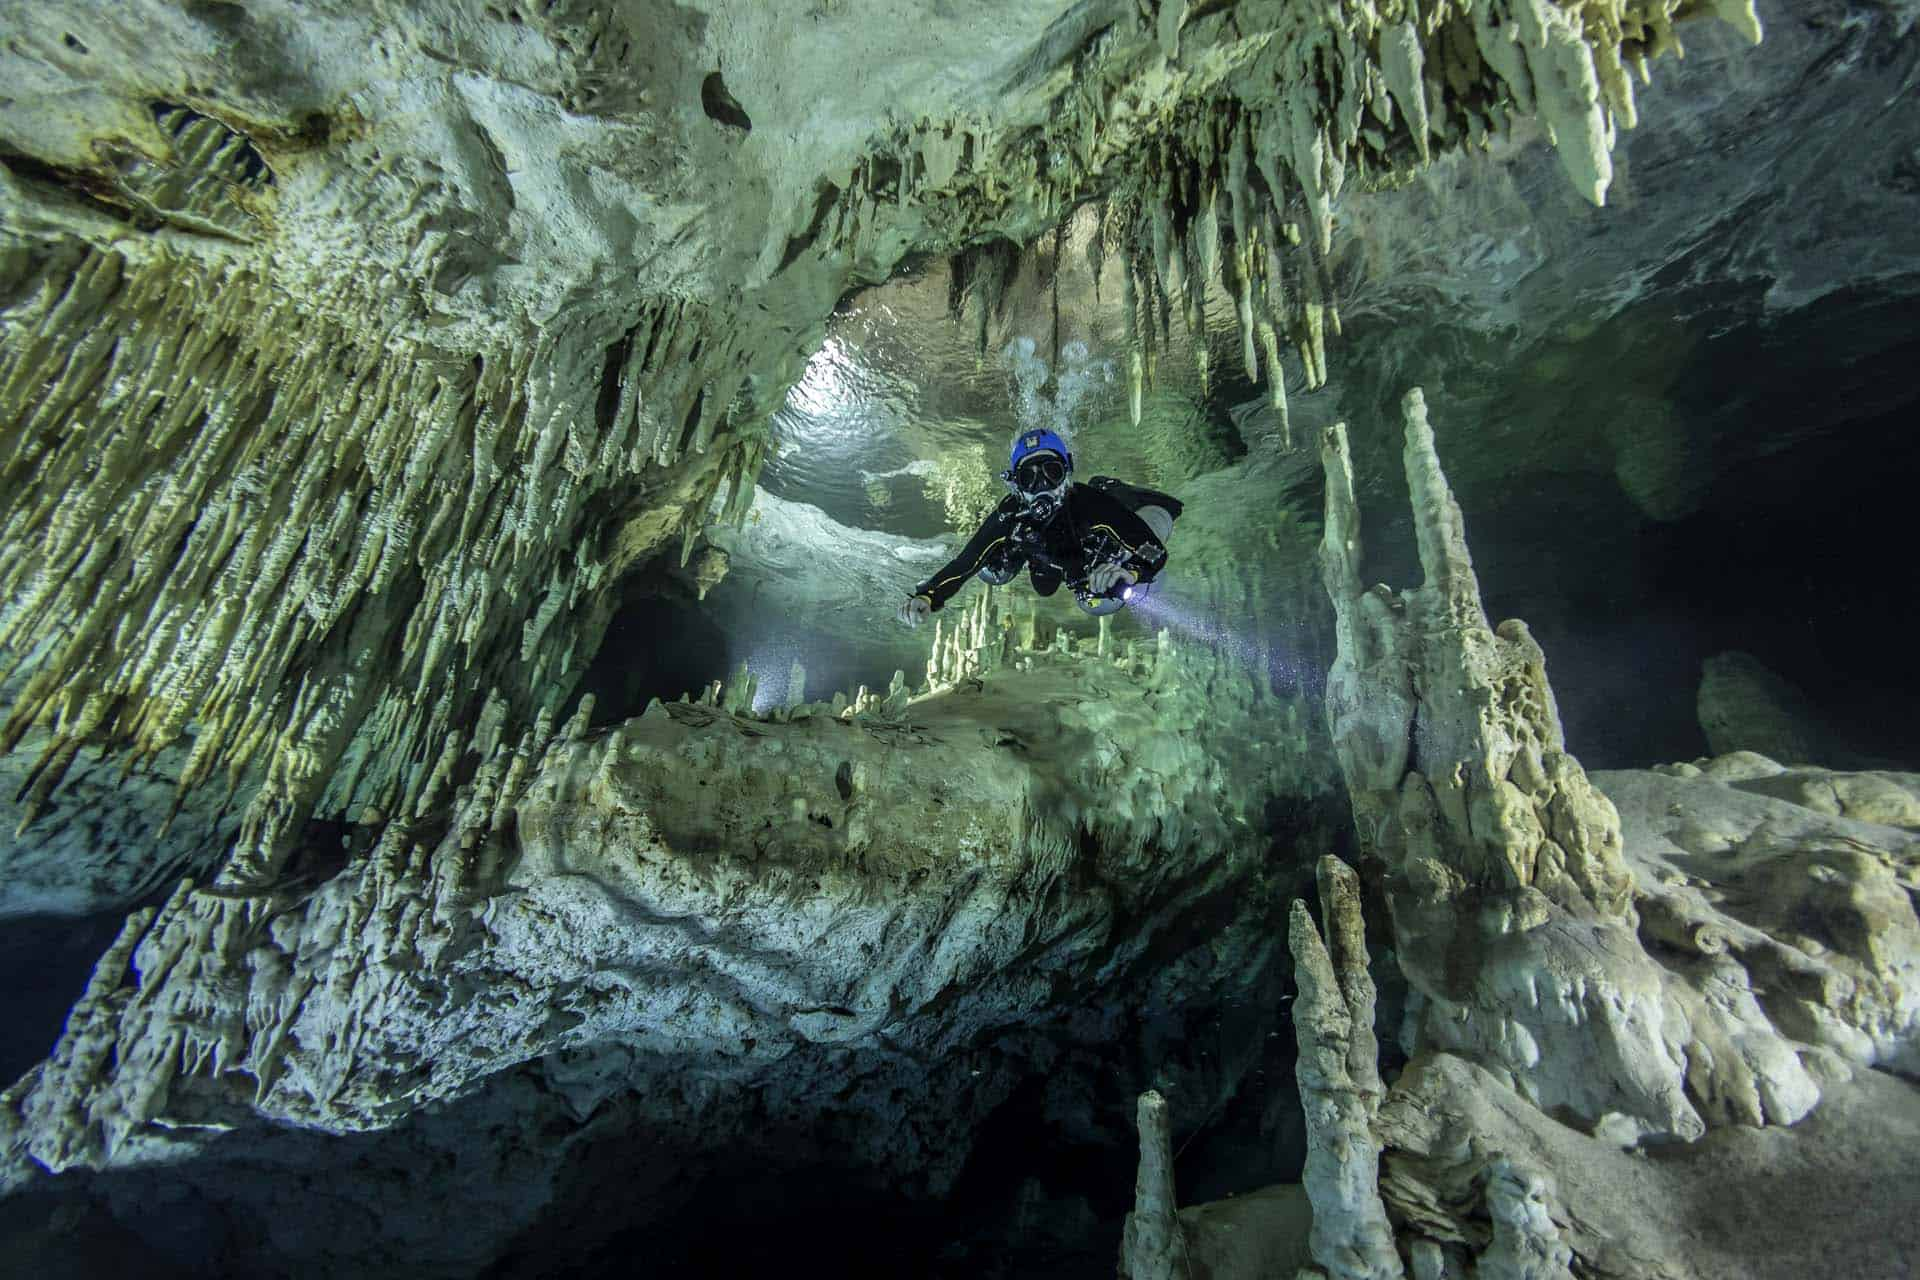 Cenotes nowadays - Scuba diving in the underwater caves